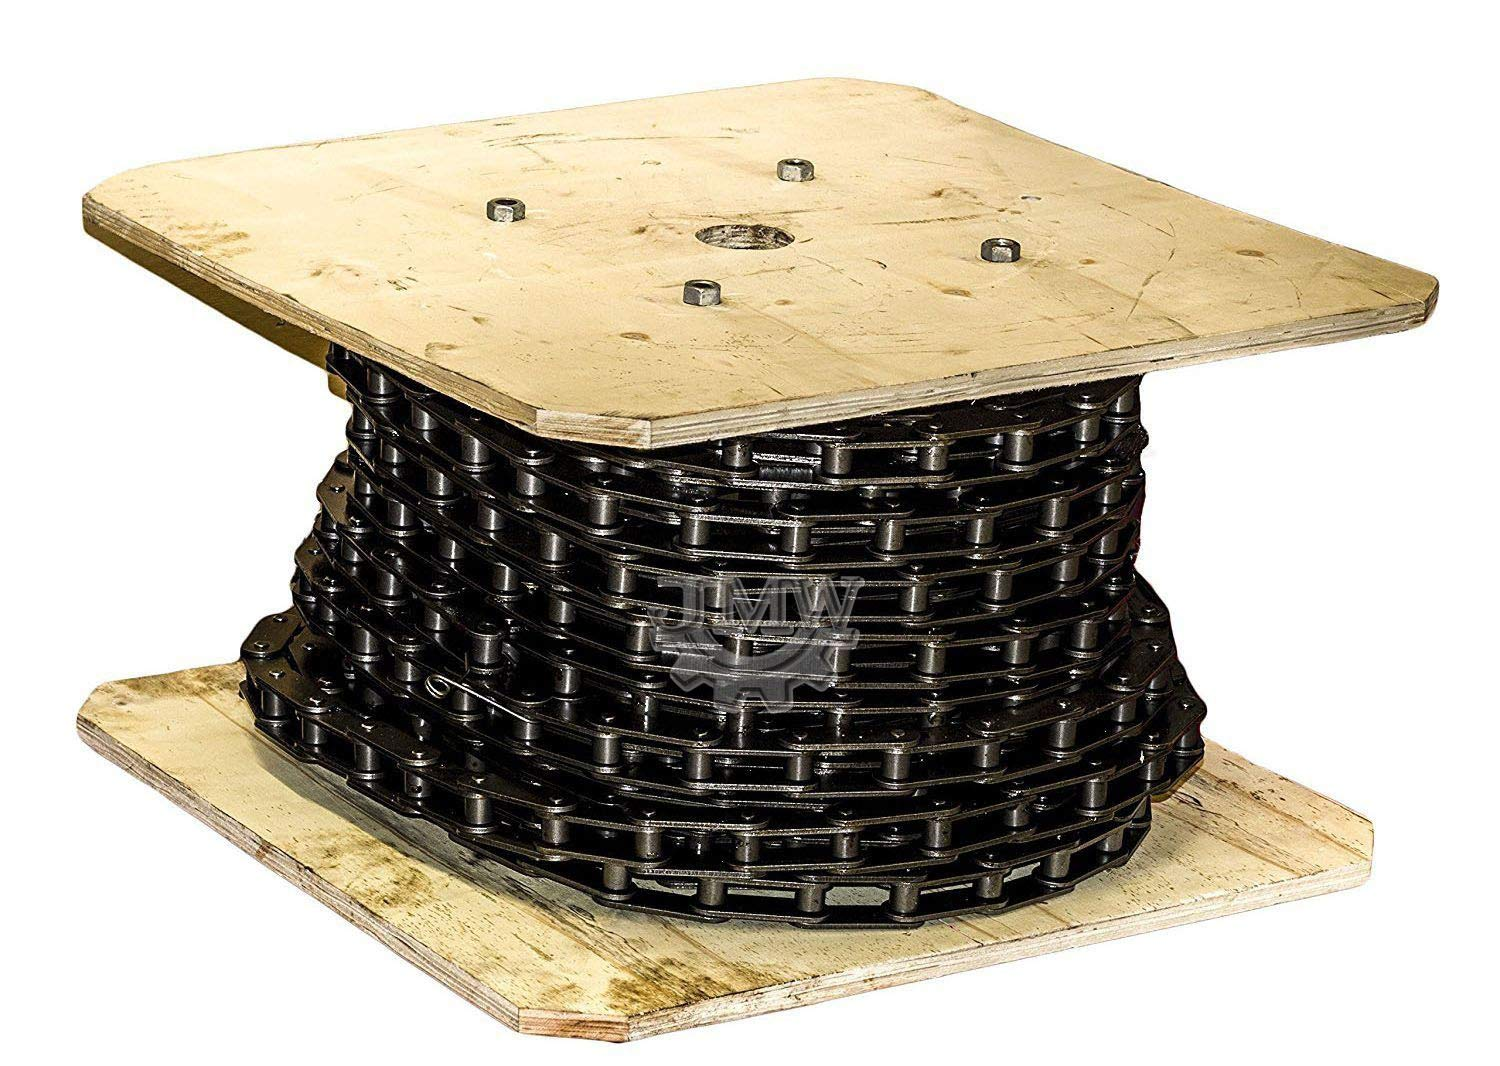 A2050 Conveyor Roller Chain 100 Feet with 10 Connecting Links